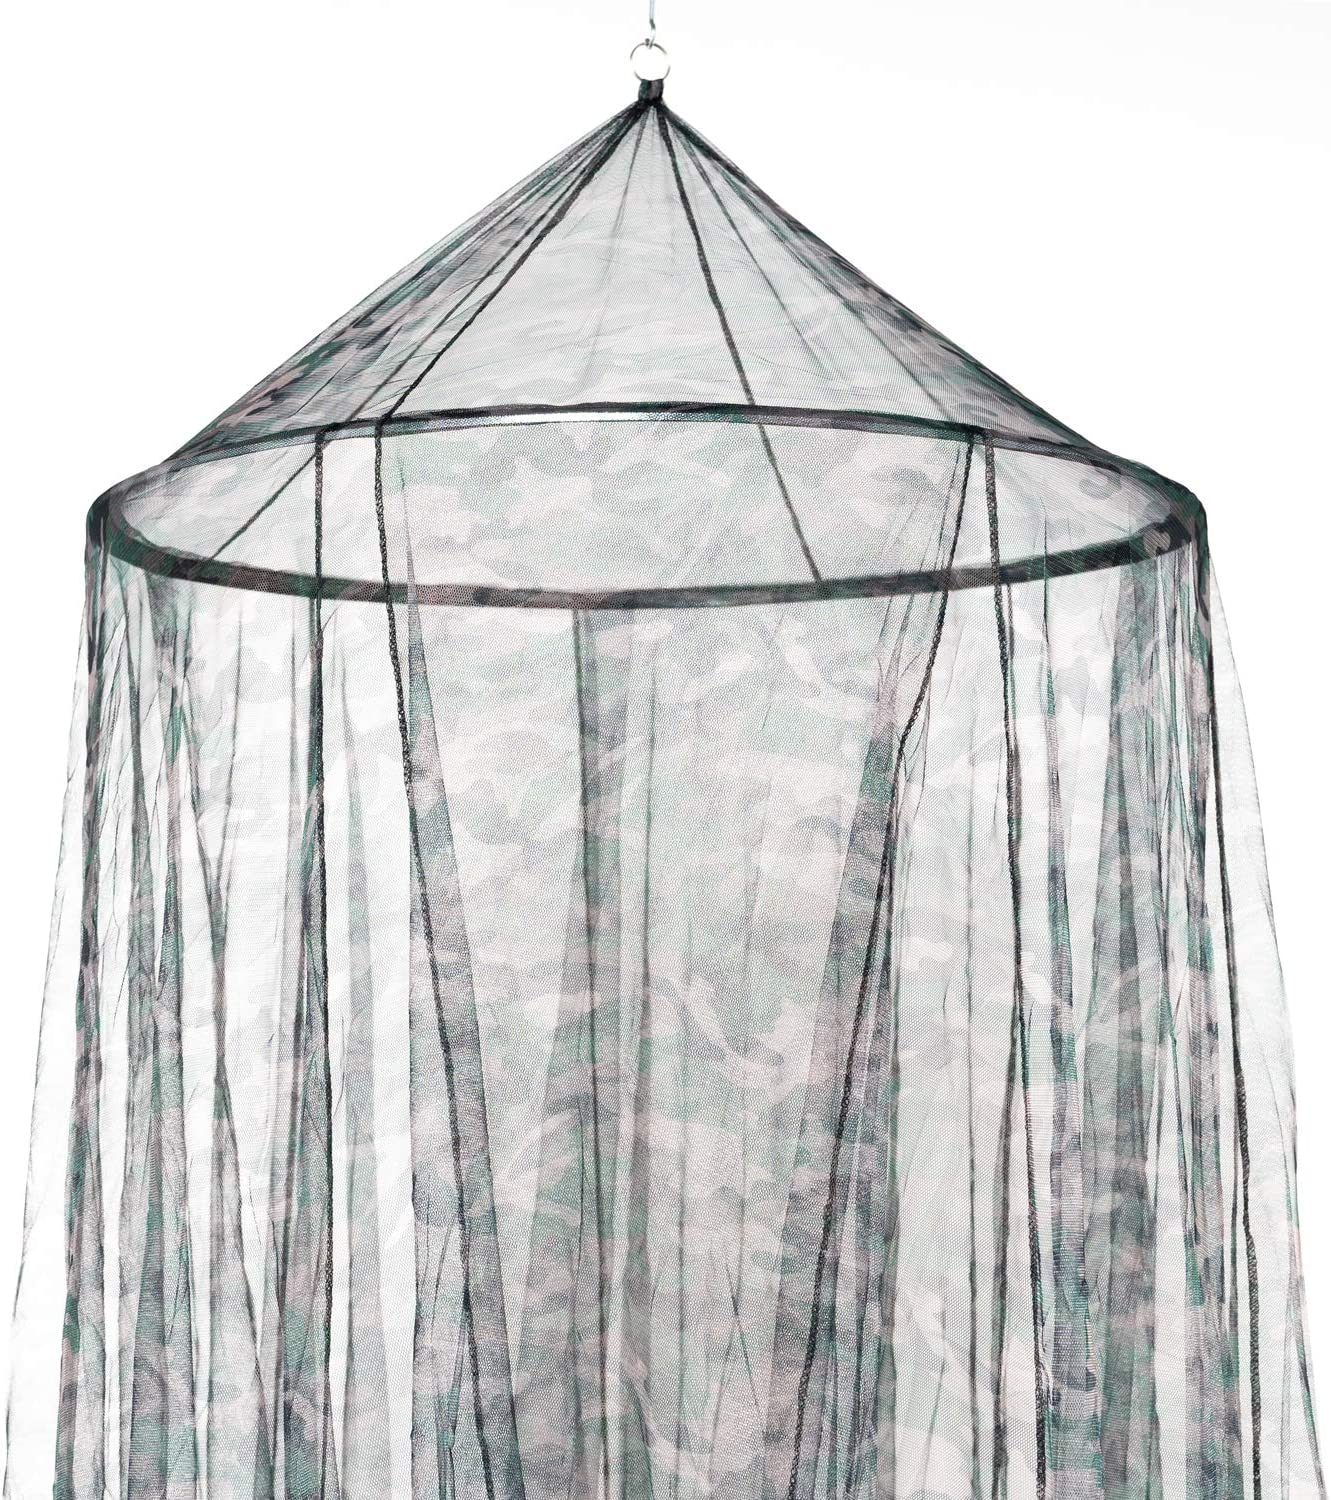 Queen Lt.Pink Octorose /® Round Hoop Bed Canopy Netting Mosquito Net Fit Crib Twin King Full